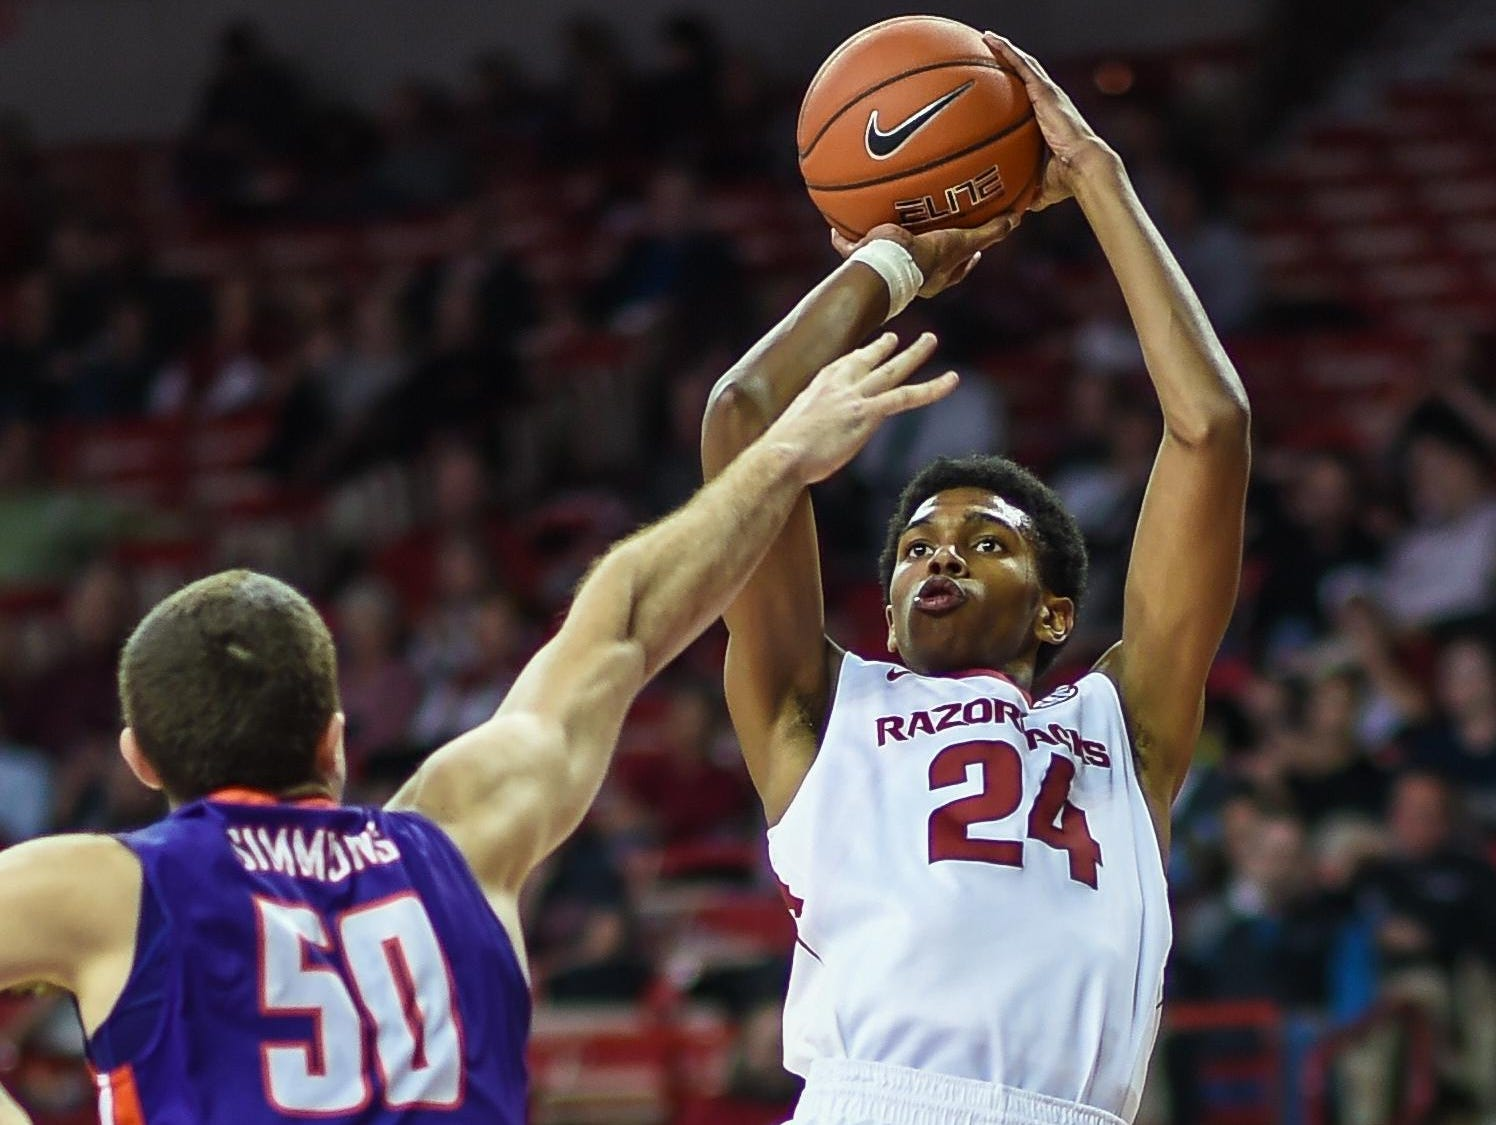 Arkansas guard Jimmy Whitt (24) shoots during a game against Evansville on Tuesday night at Walton Arena.